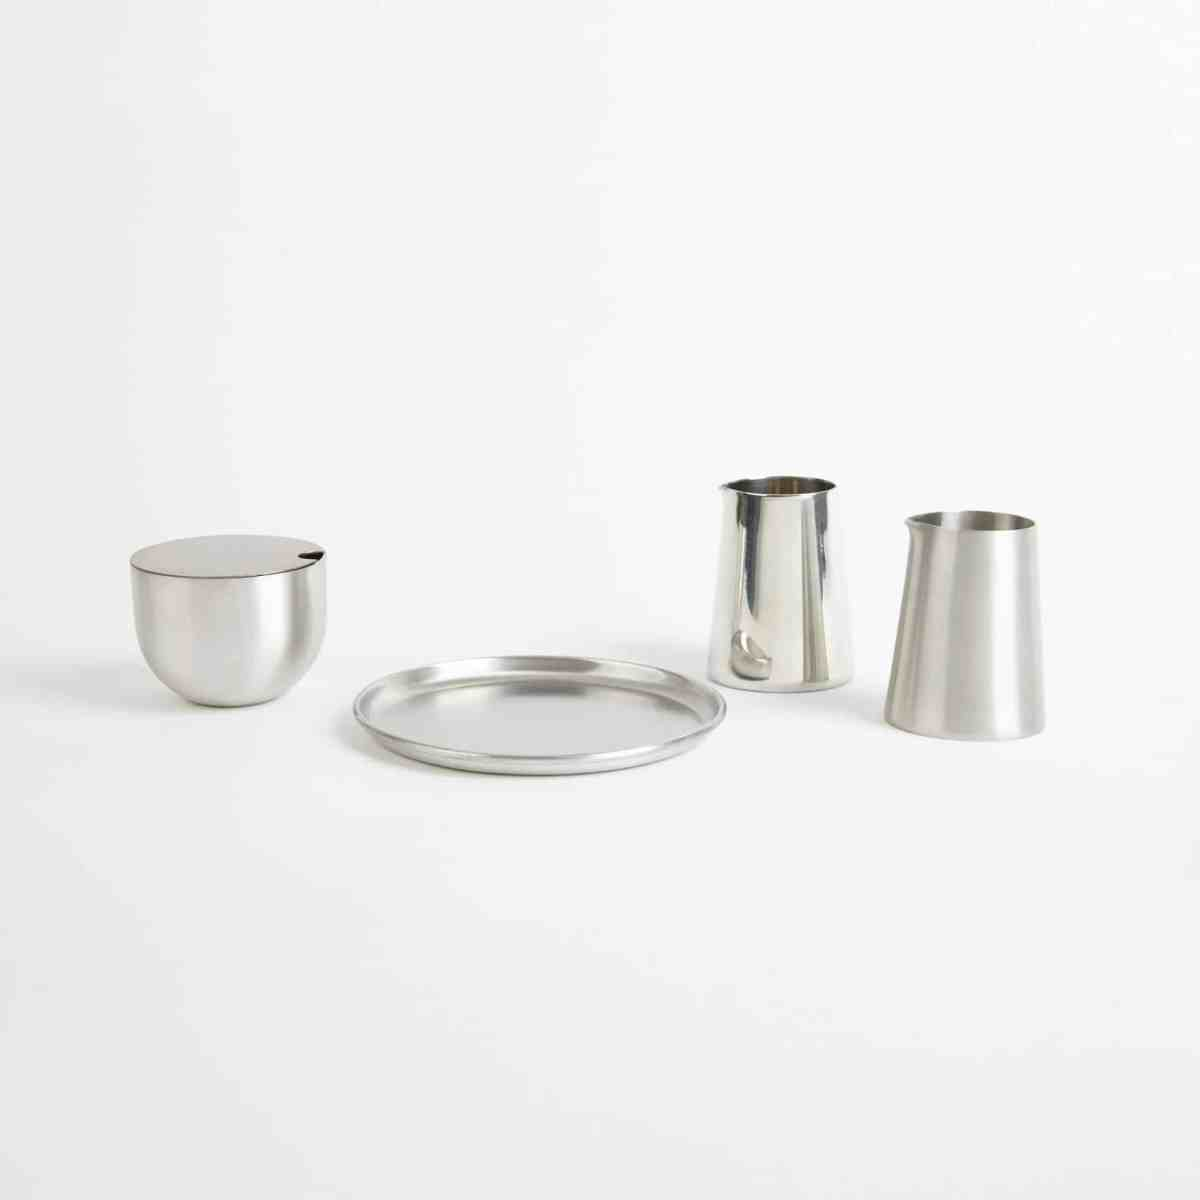 pottery-series-pewter-another-country-003